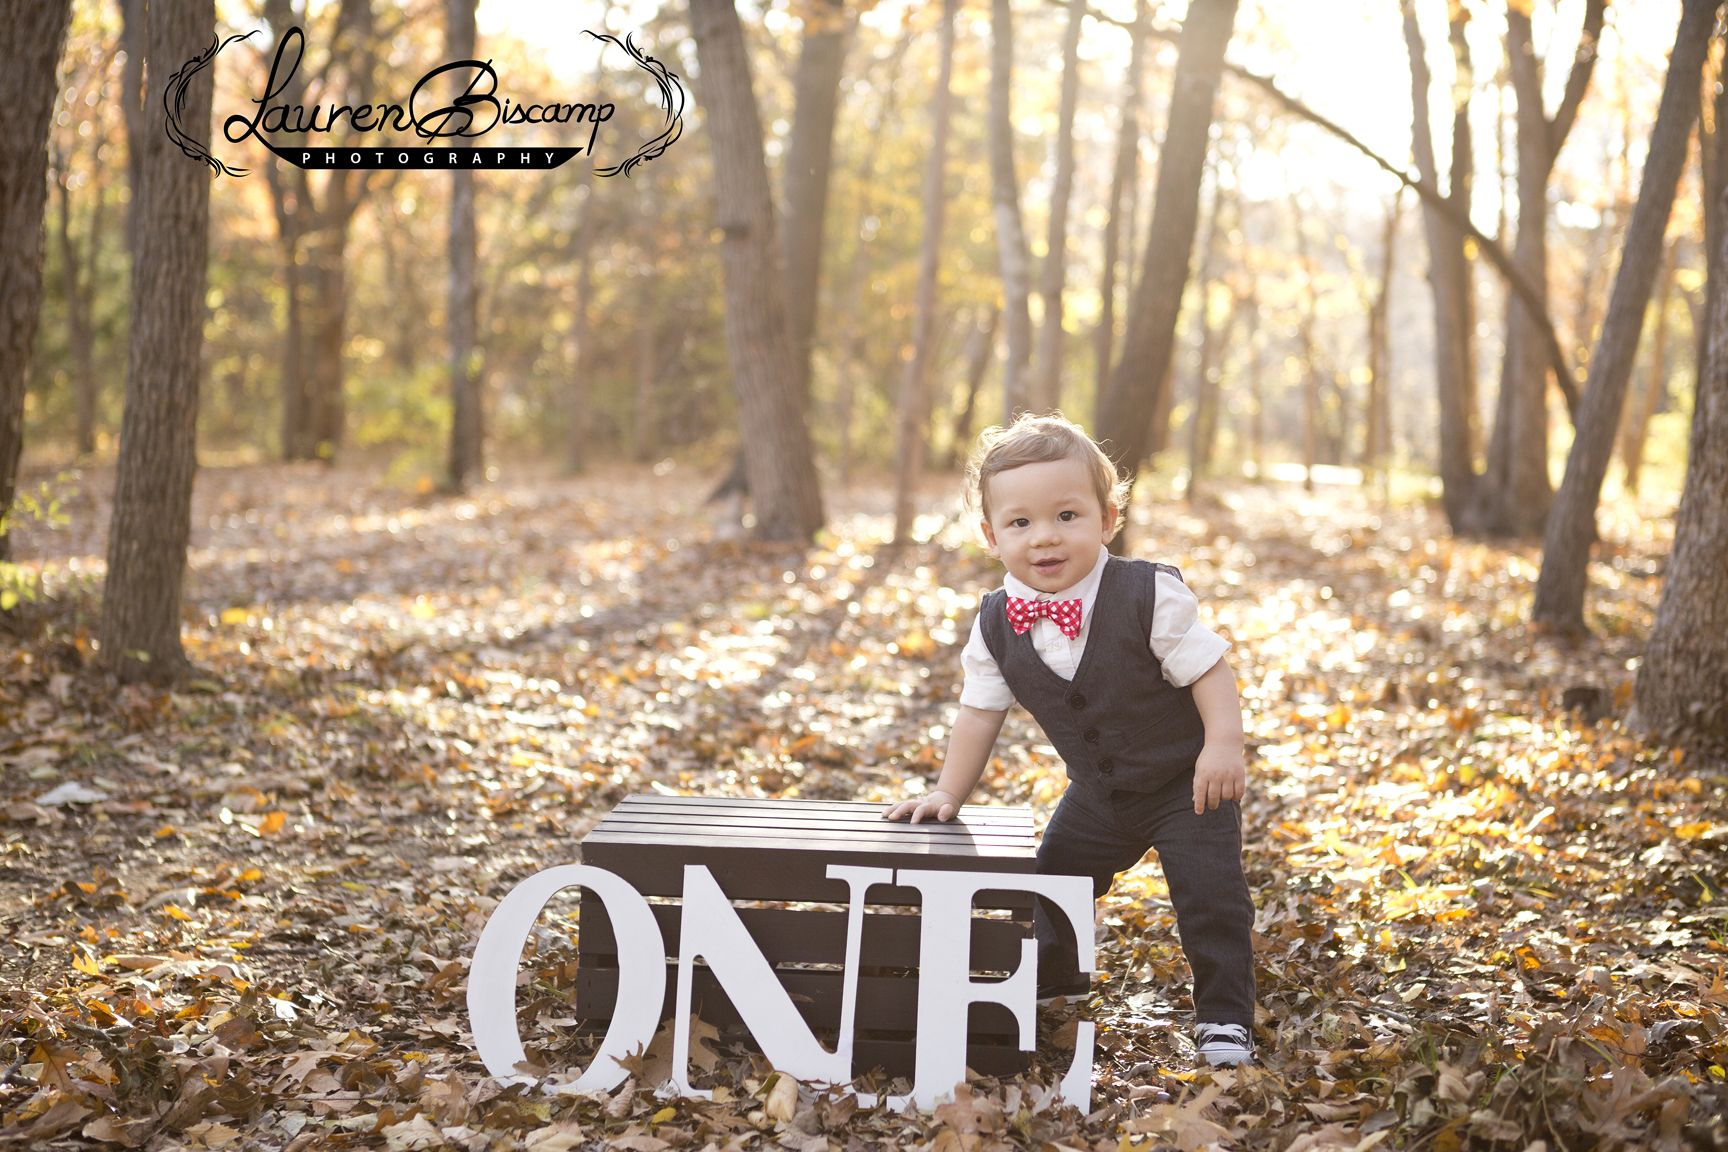 One Year Old Rustic Outdoor Photoshoot Great Spot For A Little Boy Lauren Biscamp Photography First Birthday Pictures 1st Boy Birthday One Year Pictures